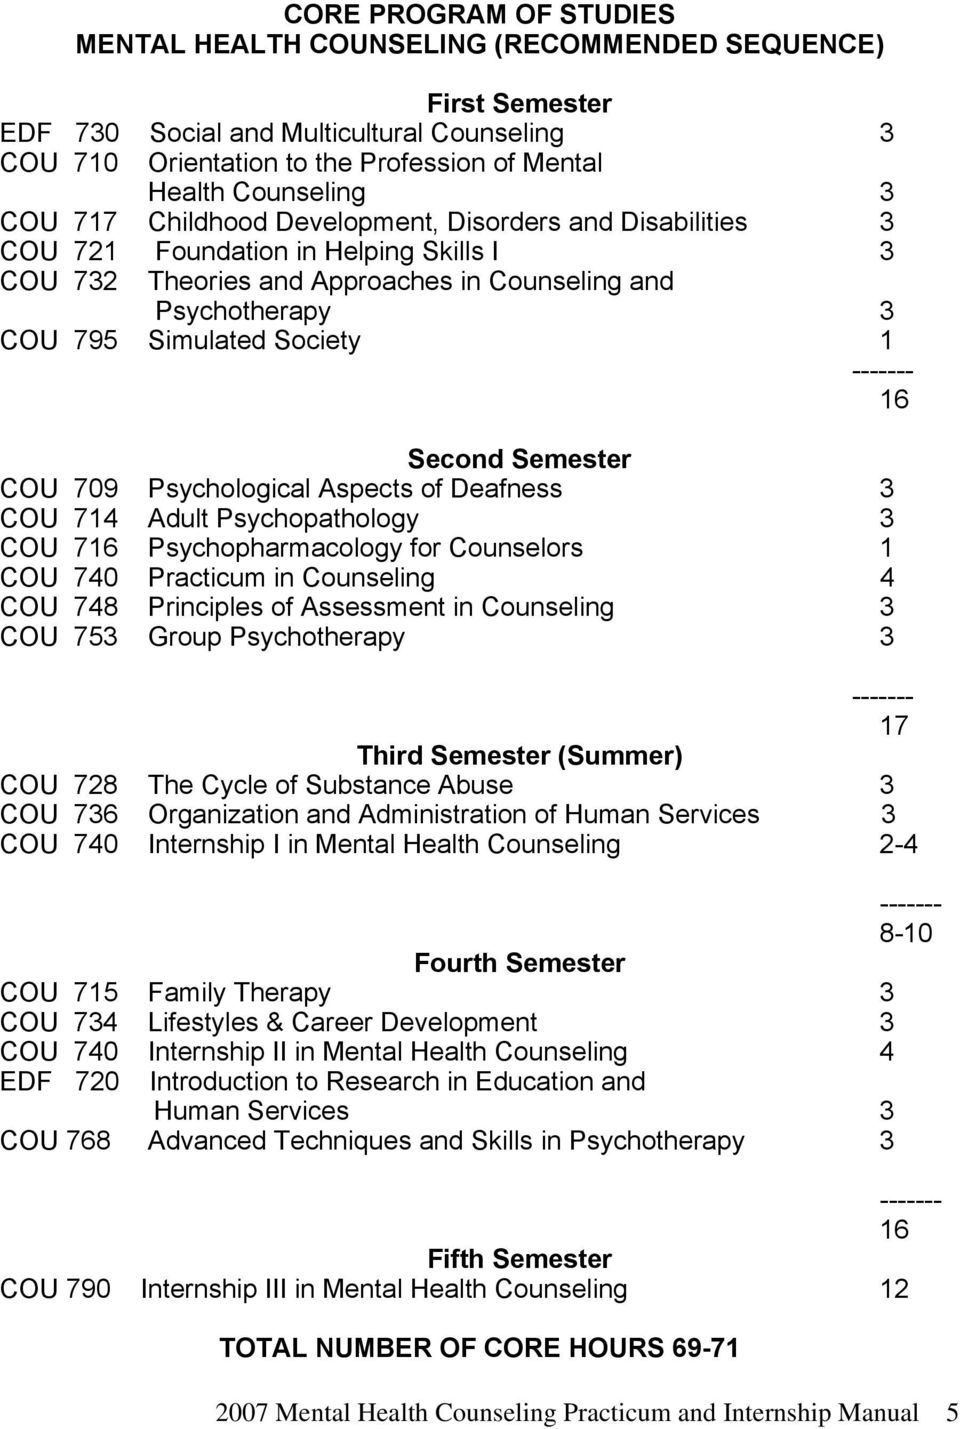 ------- 16 Second Semester COU 709 Psychological Aspects of Deafness 3 COU 714 Adult Psychopathology 3 COU 716 Psychopharmacology for Counselors 1 COU 740 Practicum in Counseling 4 COU 748 Principles